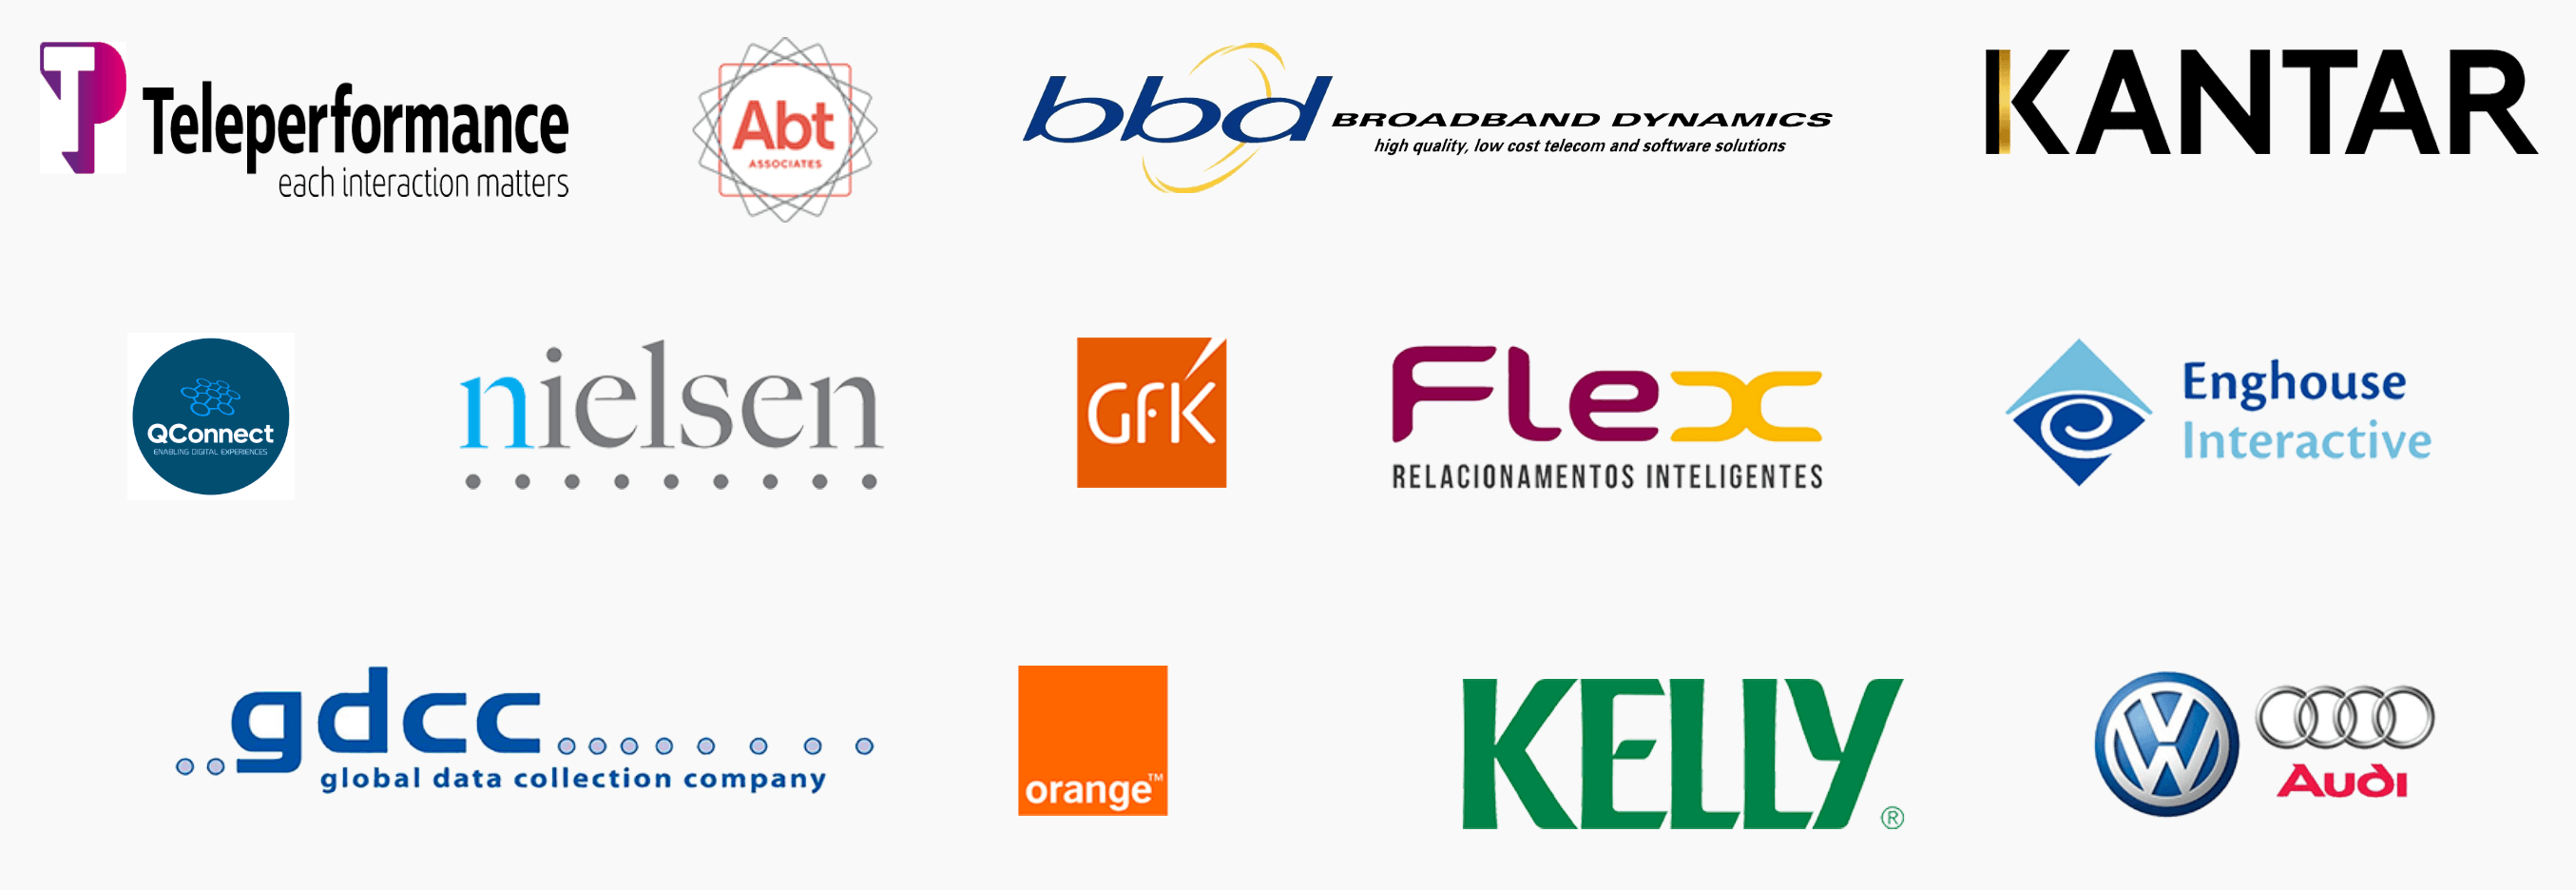 Sytel's partners and customers